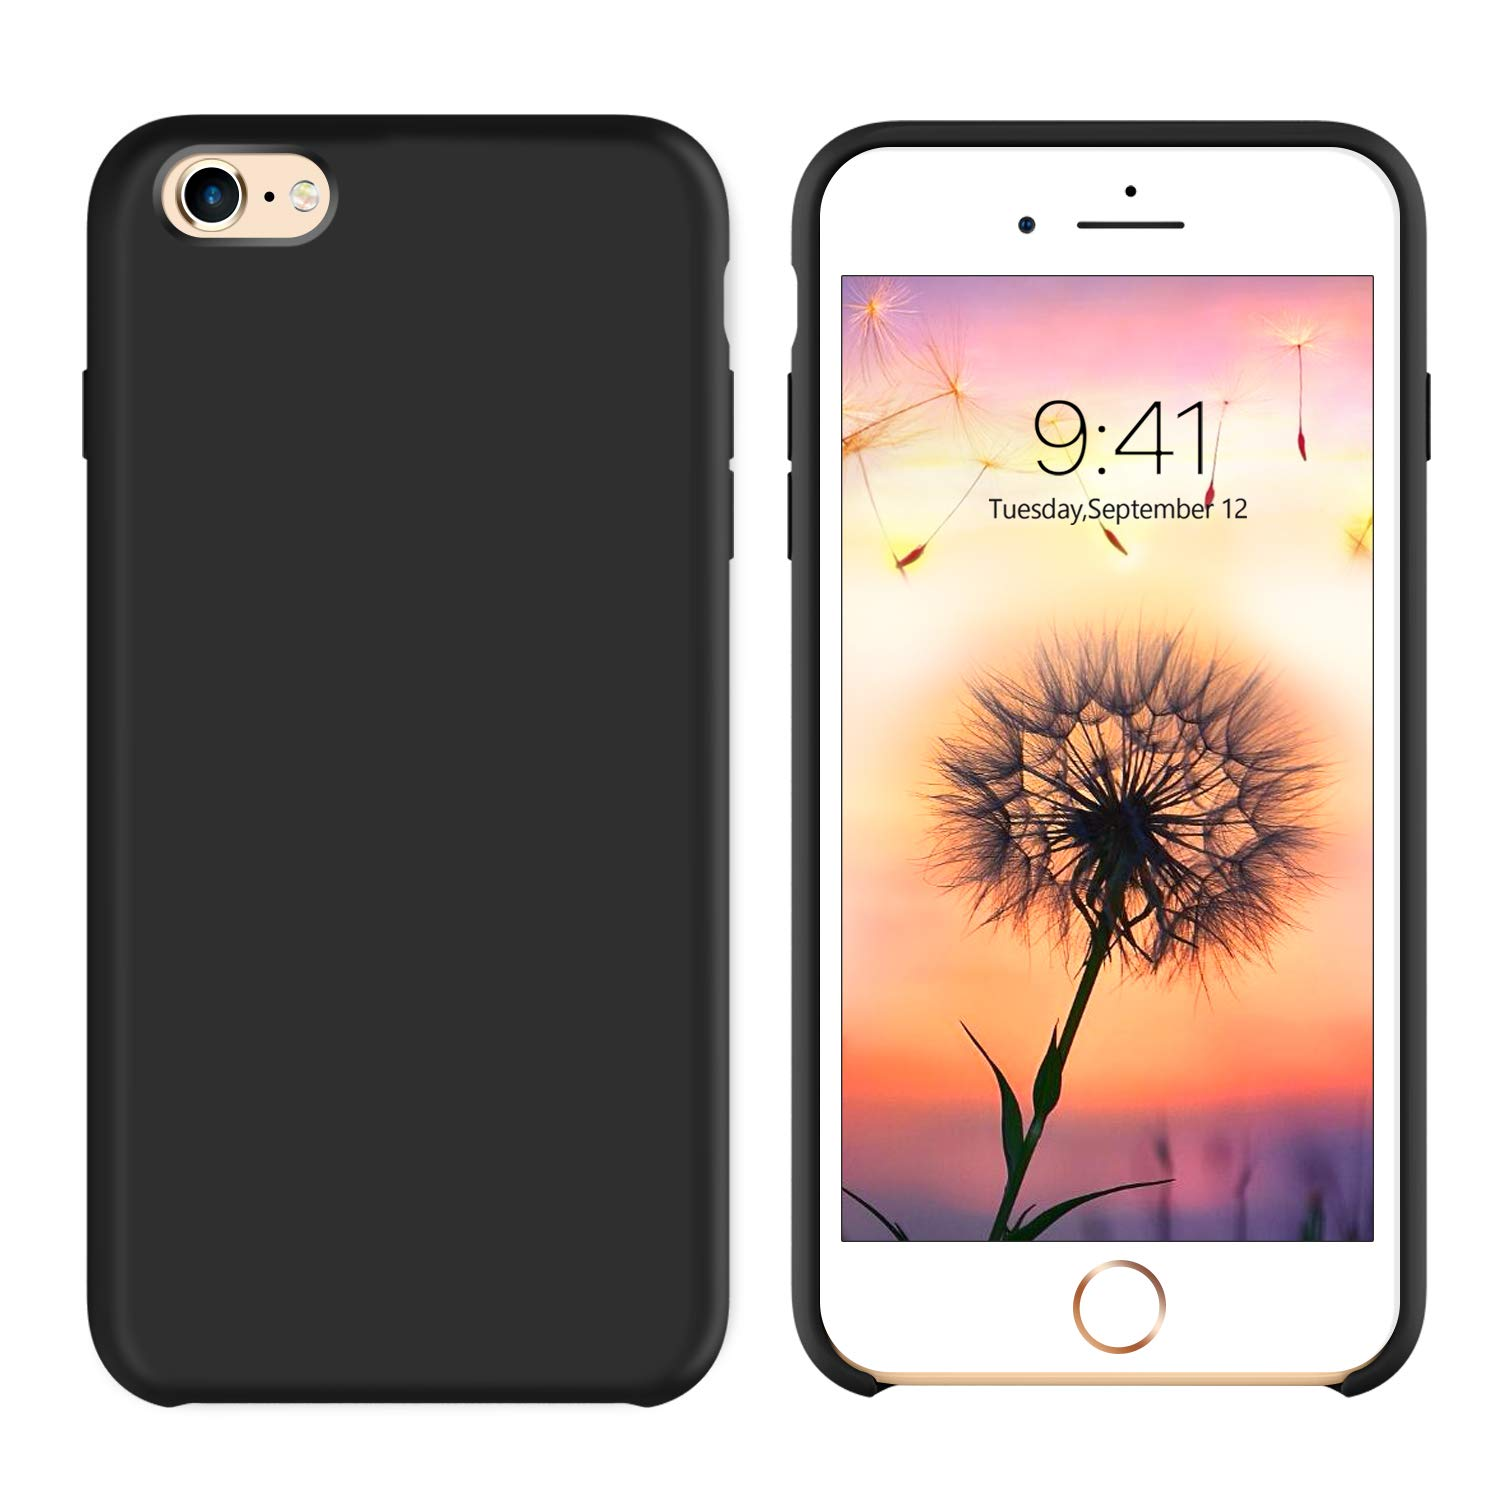 GUAGUA iPhone 6S Plus Case iPhone 6 Plus Case Liquid Silicone Gel Rubber Cover with Soft Microfiber Cloth Lining Cushion Case Slim Fit Shockproof Protective Phone Cases for iPhone 6S Plus/6 Plus Black